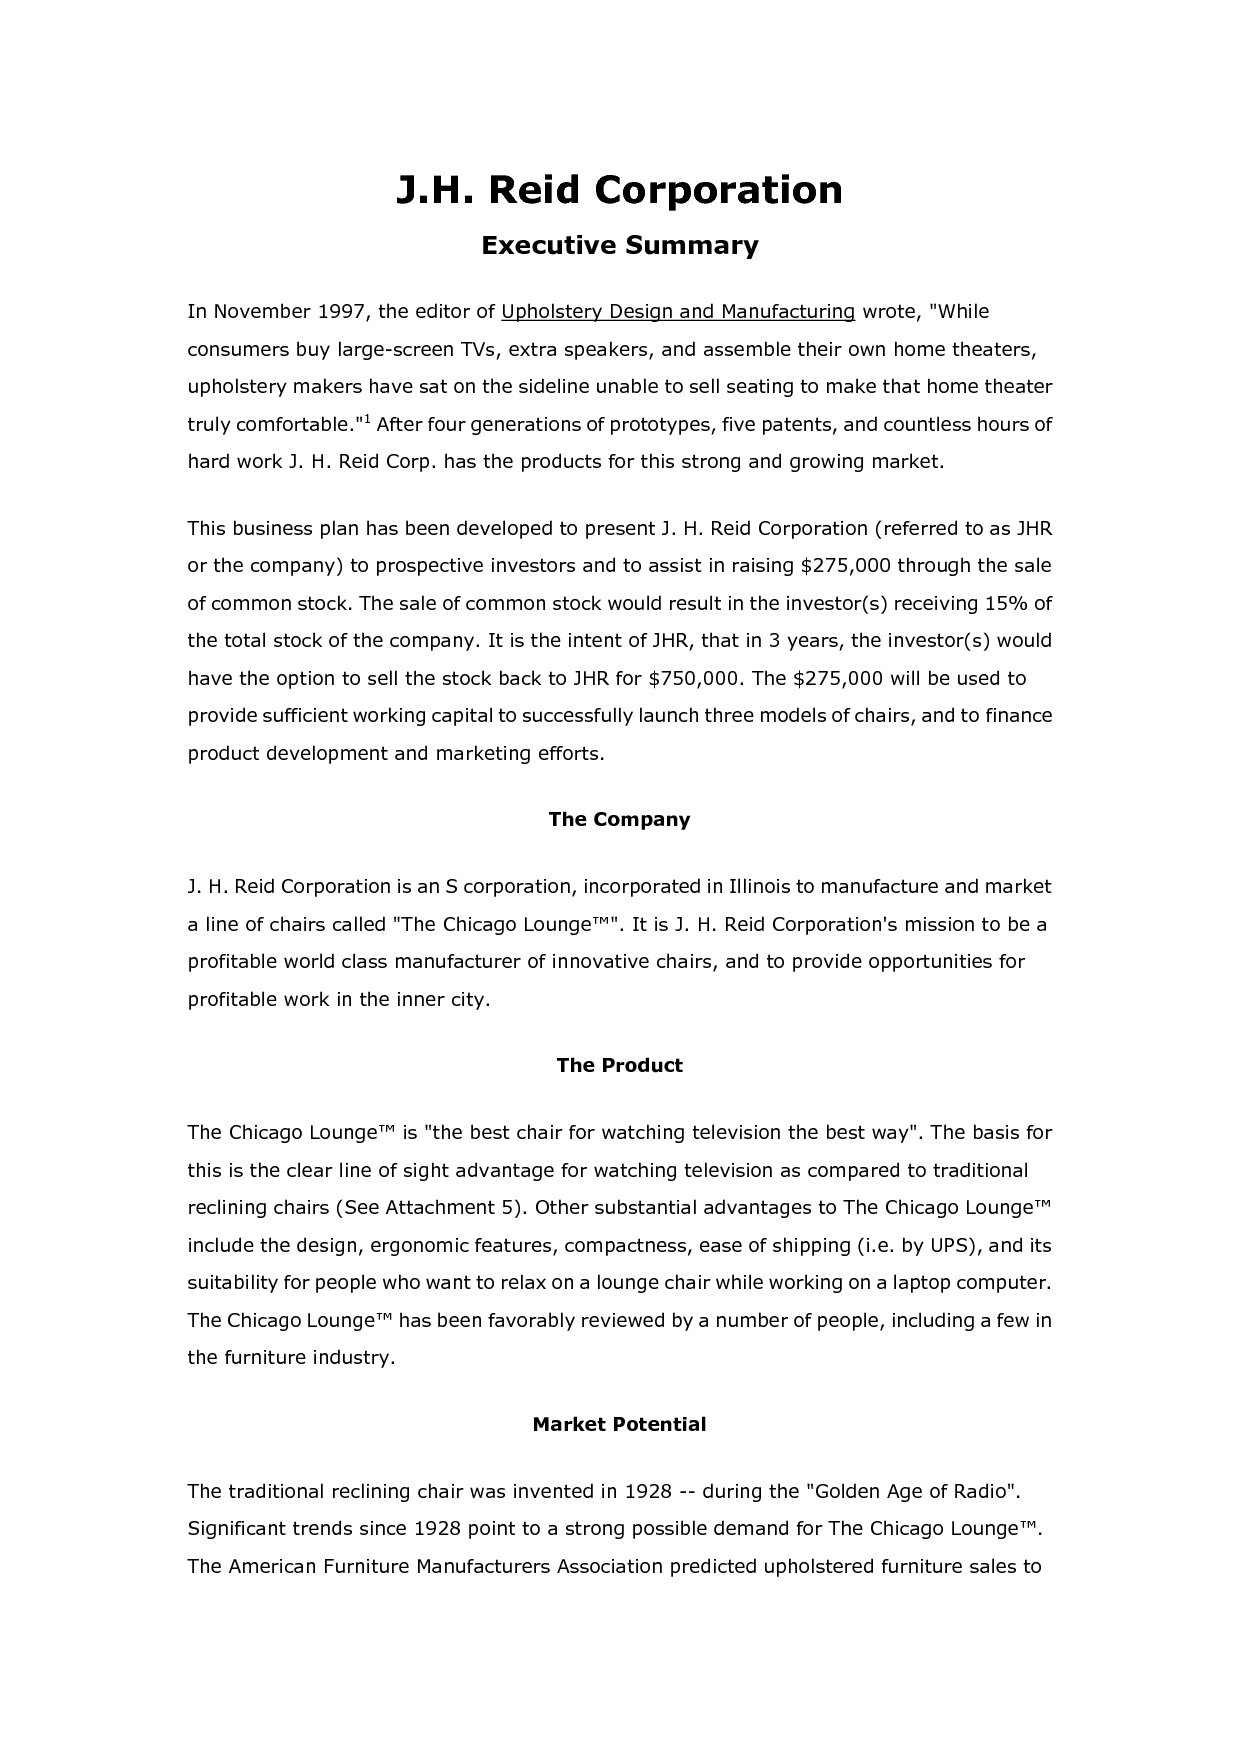 how to write an essay in apa format for college sample proposal  sample proposal essay examples of a proposal essay apa example examples of a proposal essayproposal essays